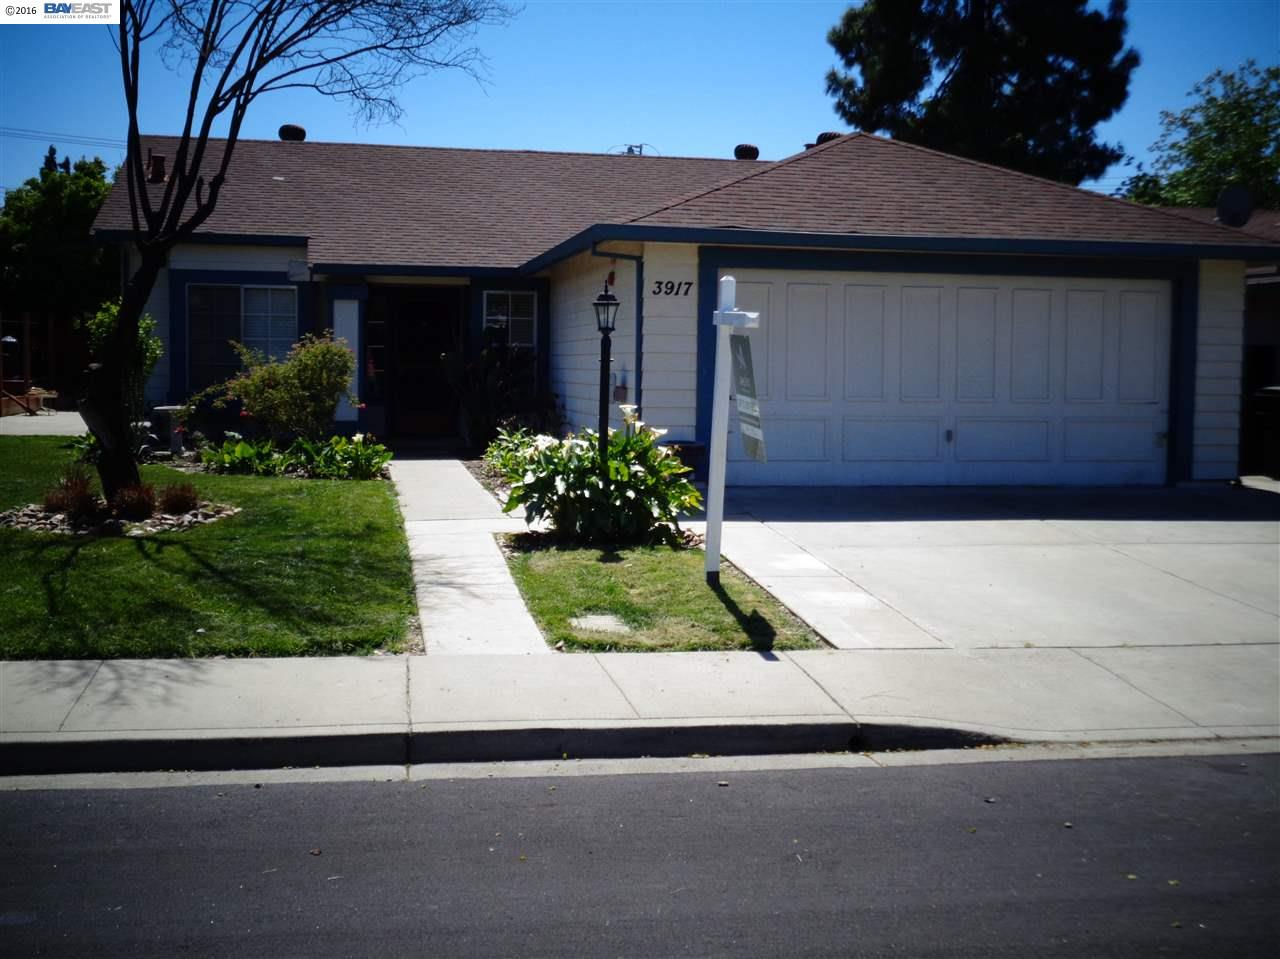 3917 Silver Oaks Way, Livermore, CA